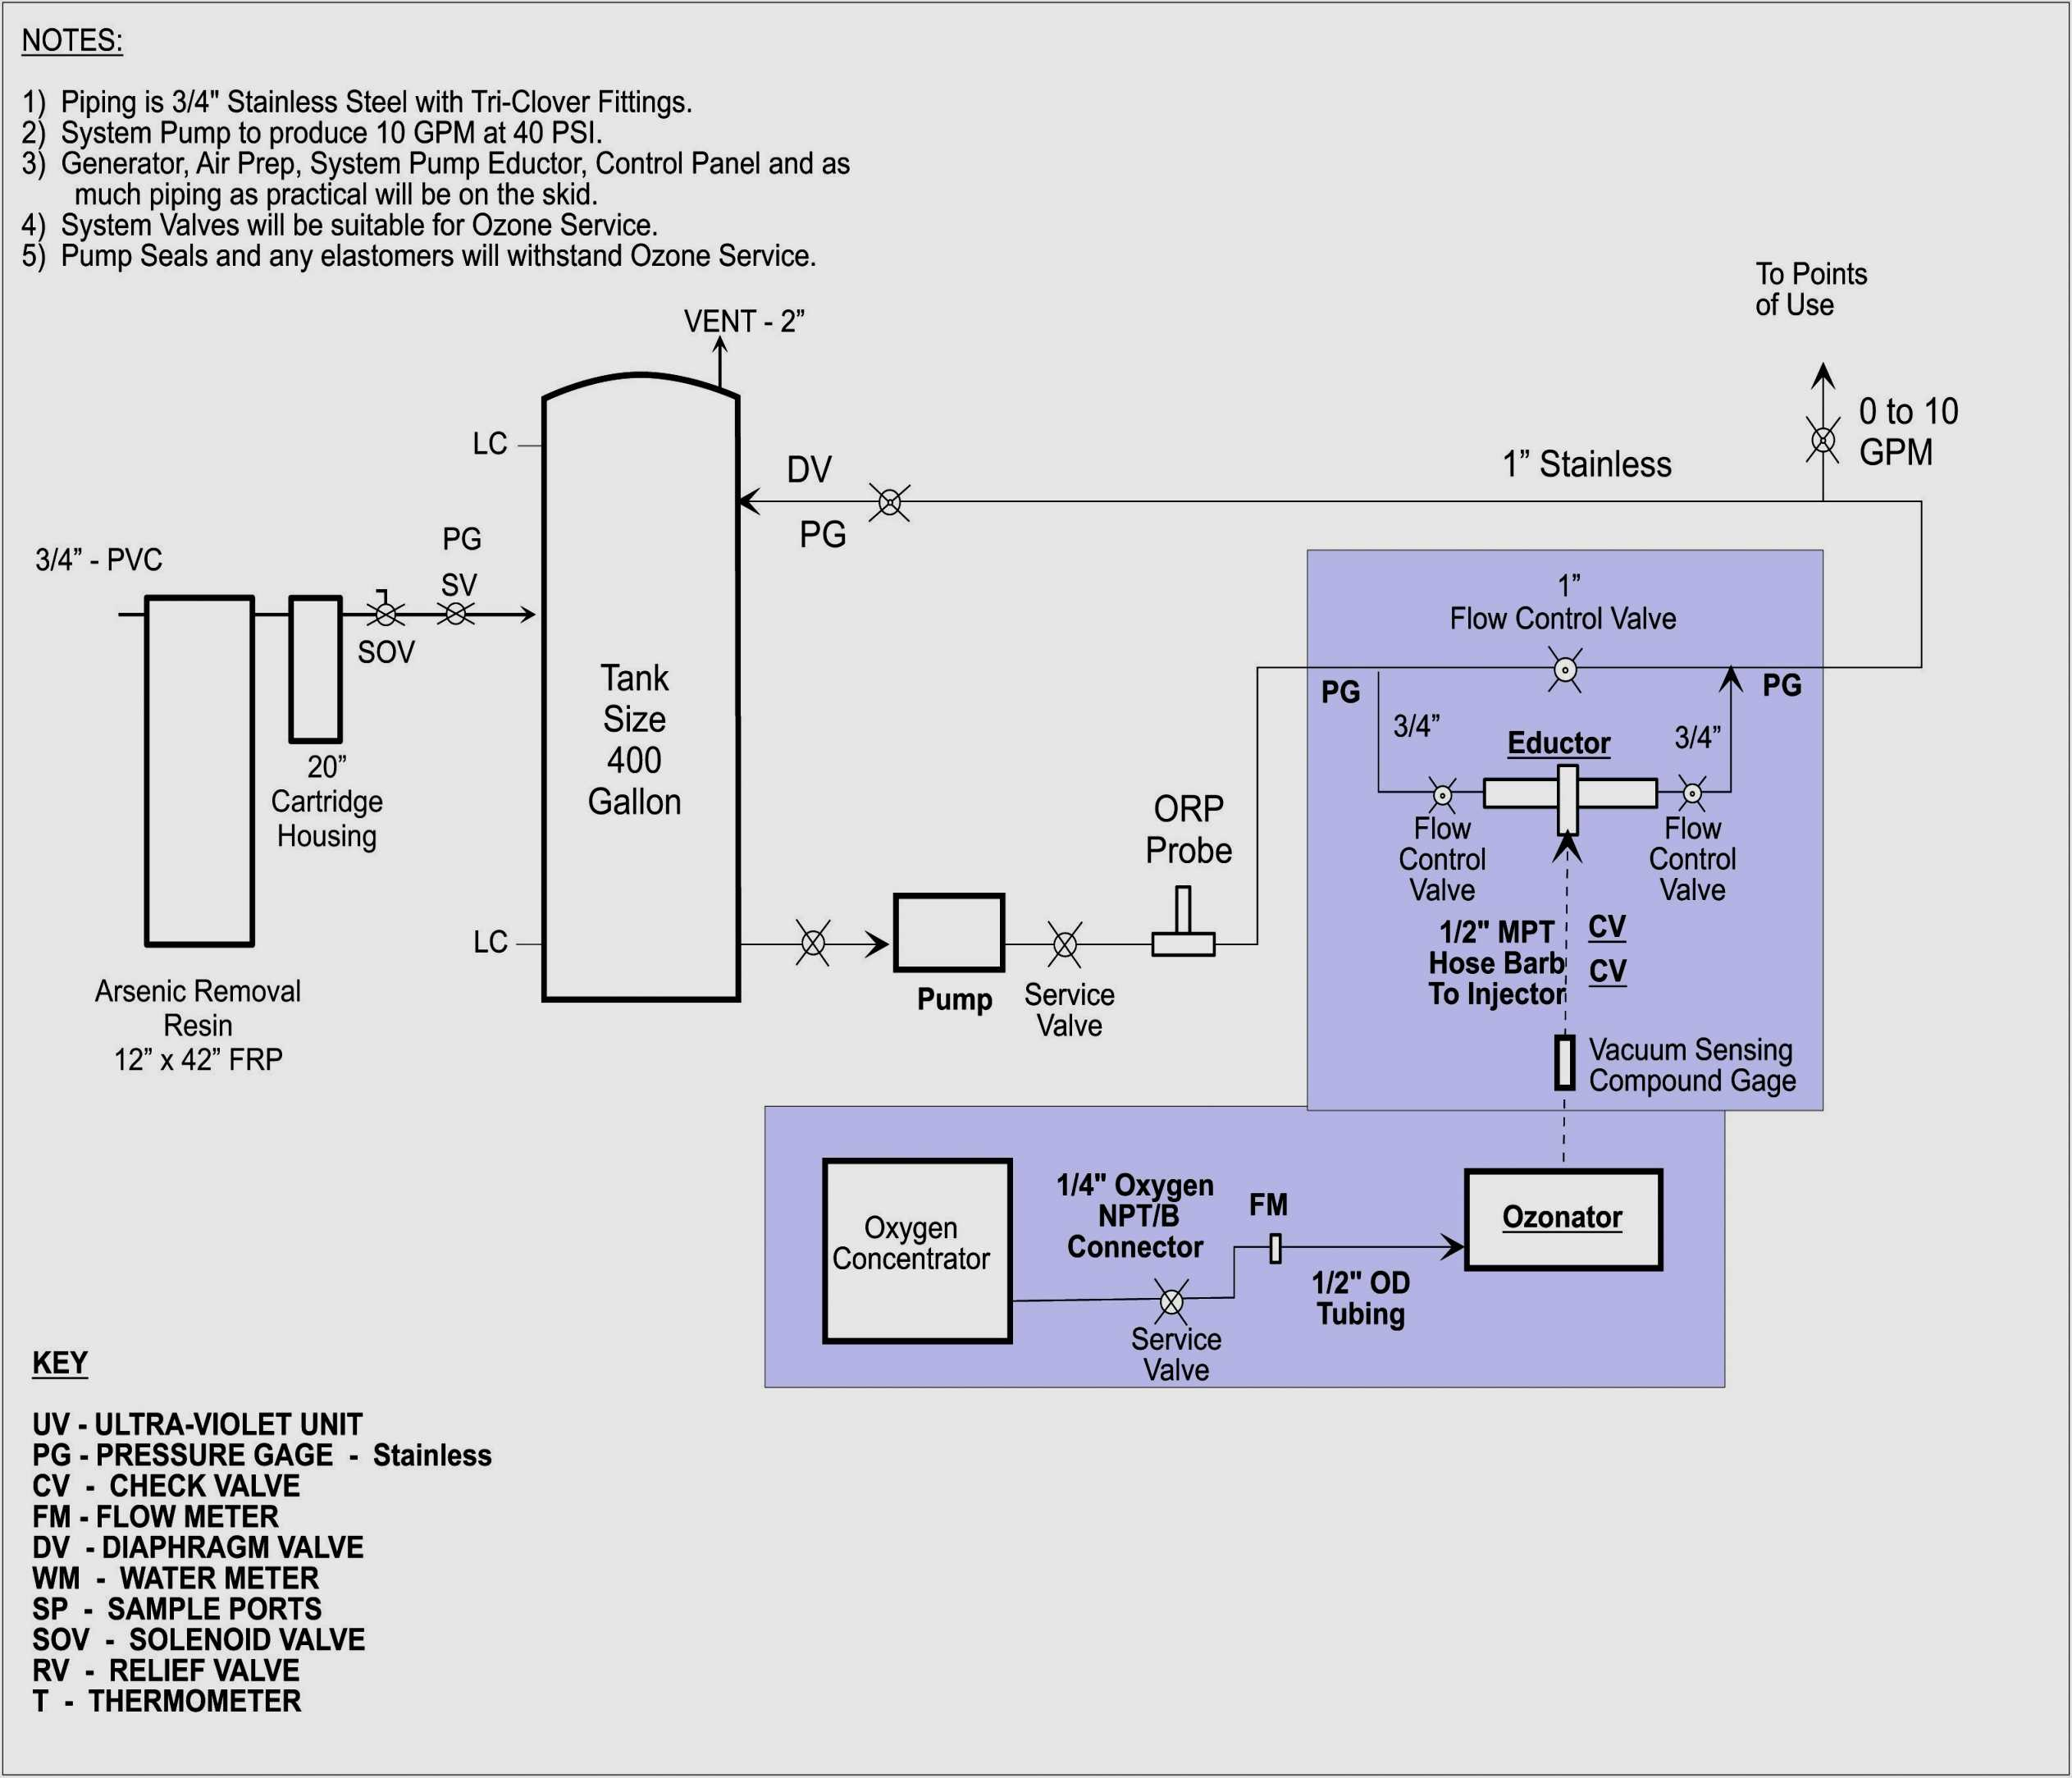 Generac Transfer Switch Wiring Diagram View Diagram - Wiring Diagram - Manual Transfer Switch Wiring Diagram